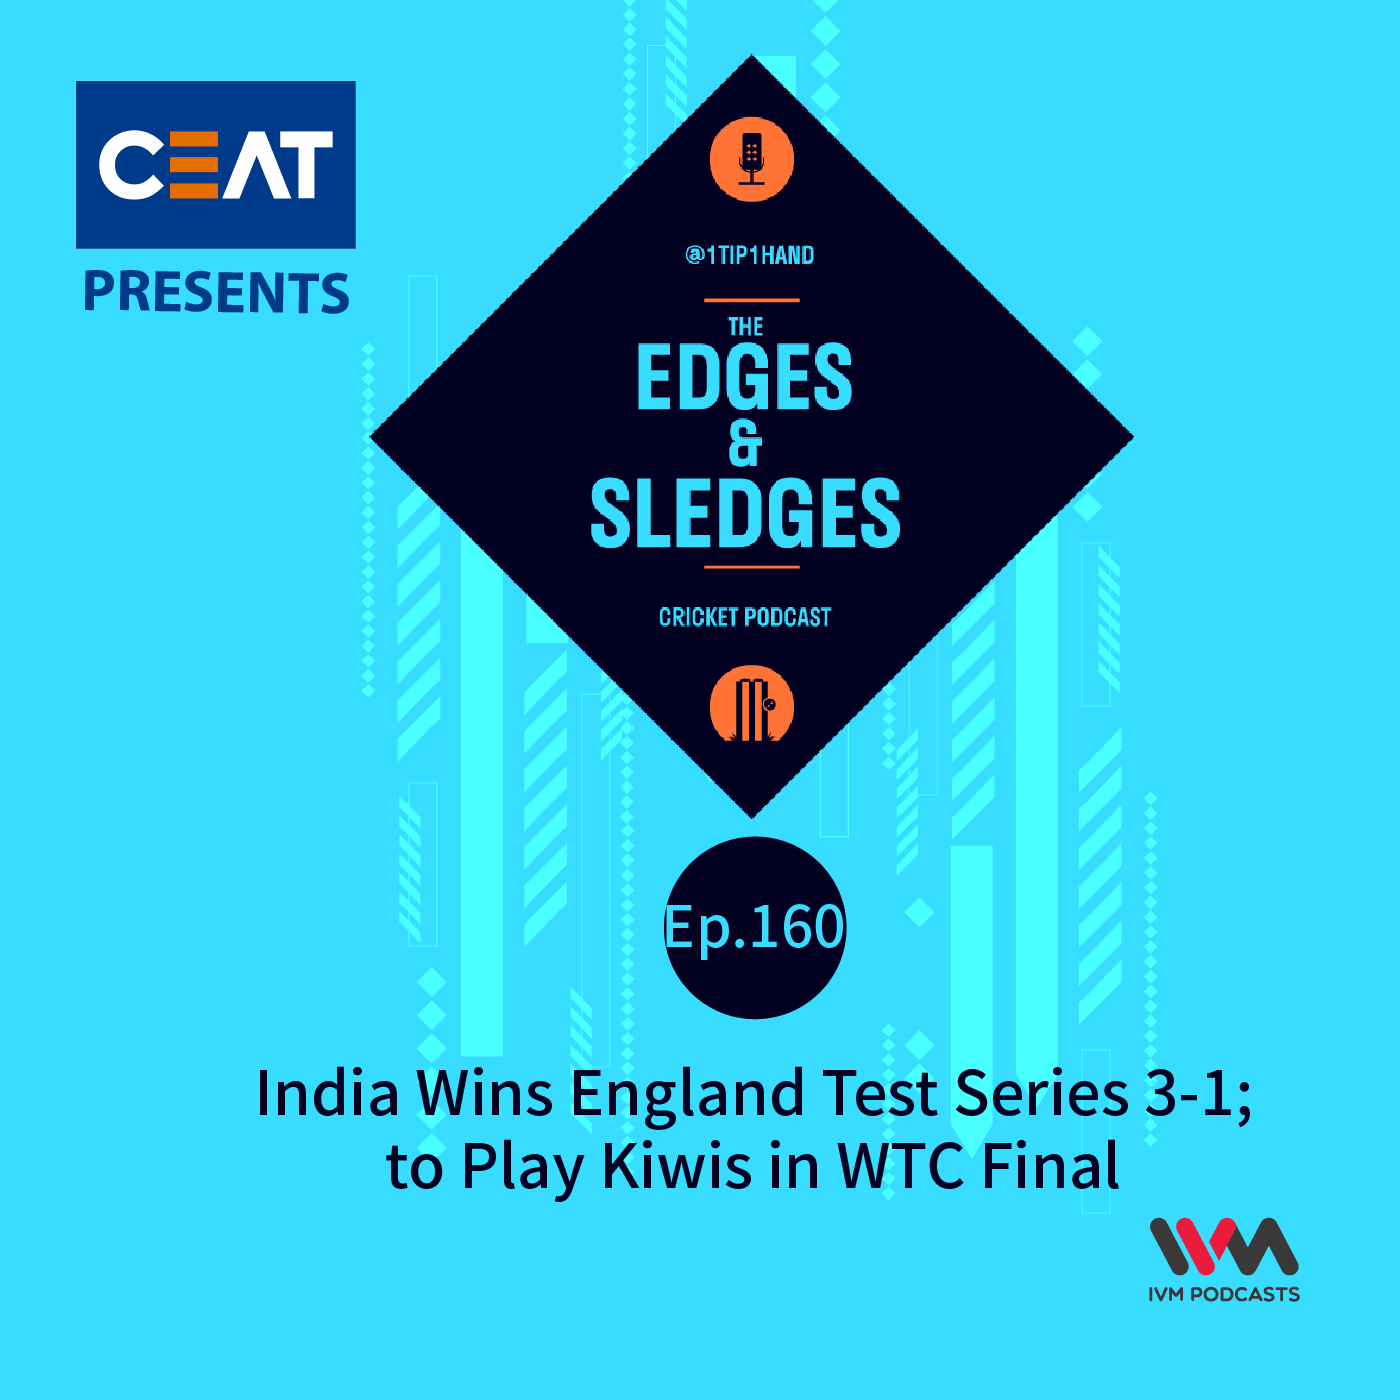 Ep. 160: India Wins England Test Series 3-1; to Play Kiwis in WTC Final